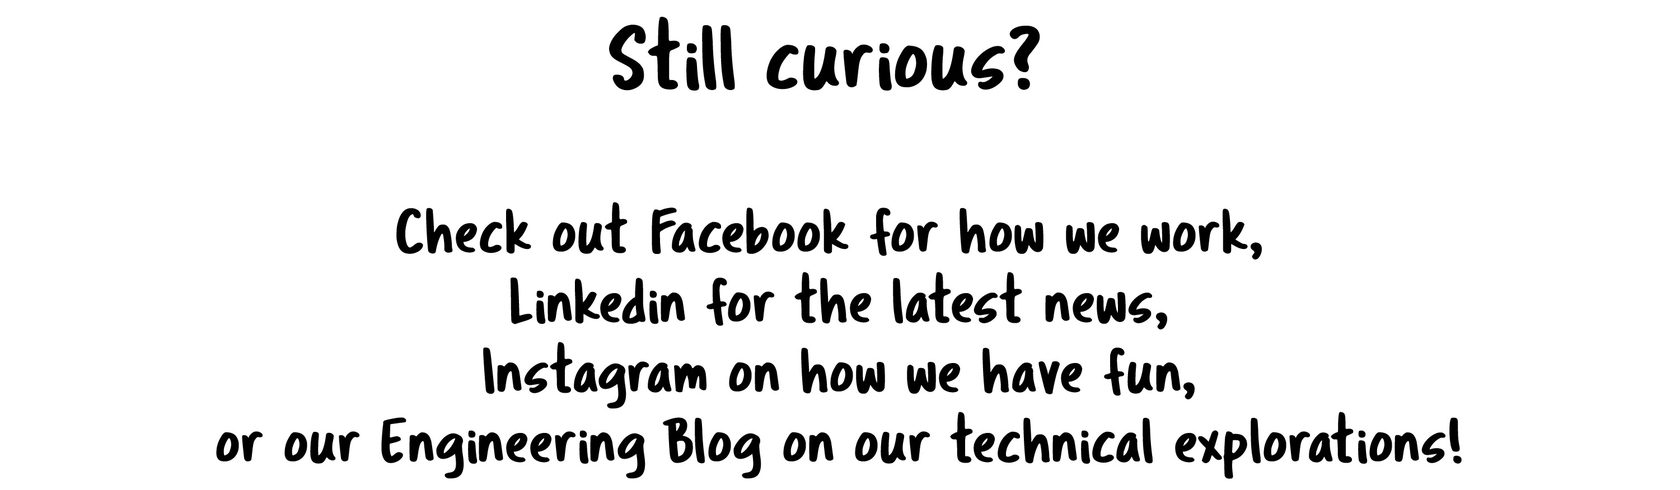 "Still curious?  Check out the ""official story"" on our social media!  Look to our Facebook for how we work,  Linkedin for the latest news, or our Instagram on how we have fun!Still curious?  Check out the ""official story"" on our social media!  Look to our Facebook for how we work,  Linkedin for the latest news, or our Instagram on how we have fun!"